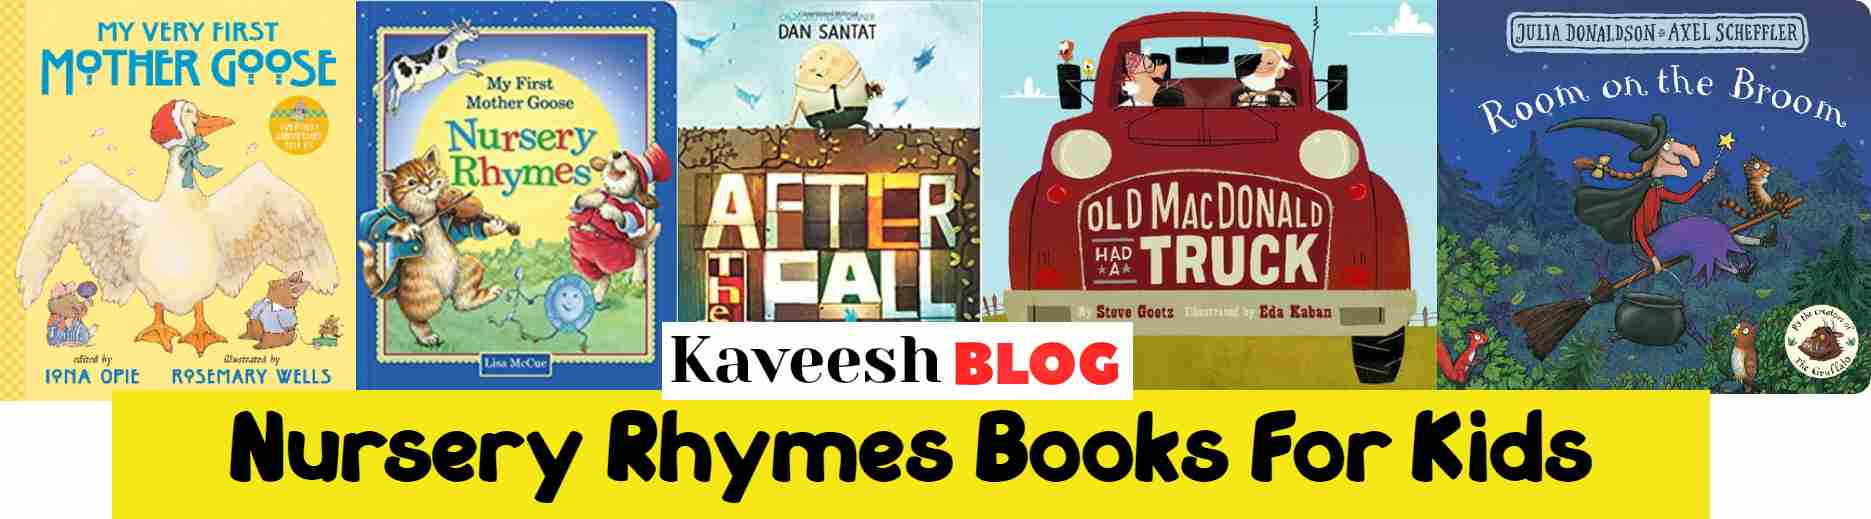 Nursery Rhymes Books for kids-kaveesh.com